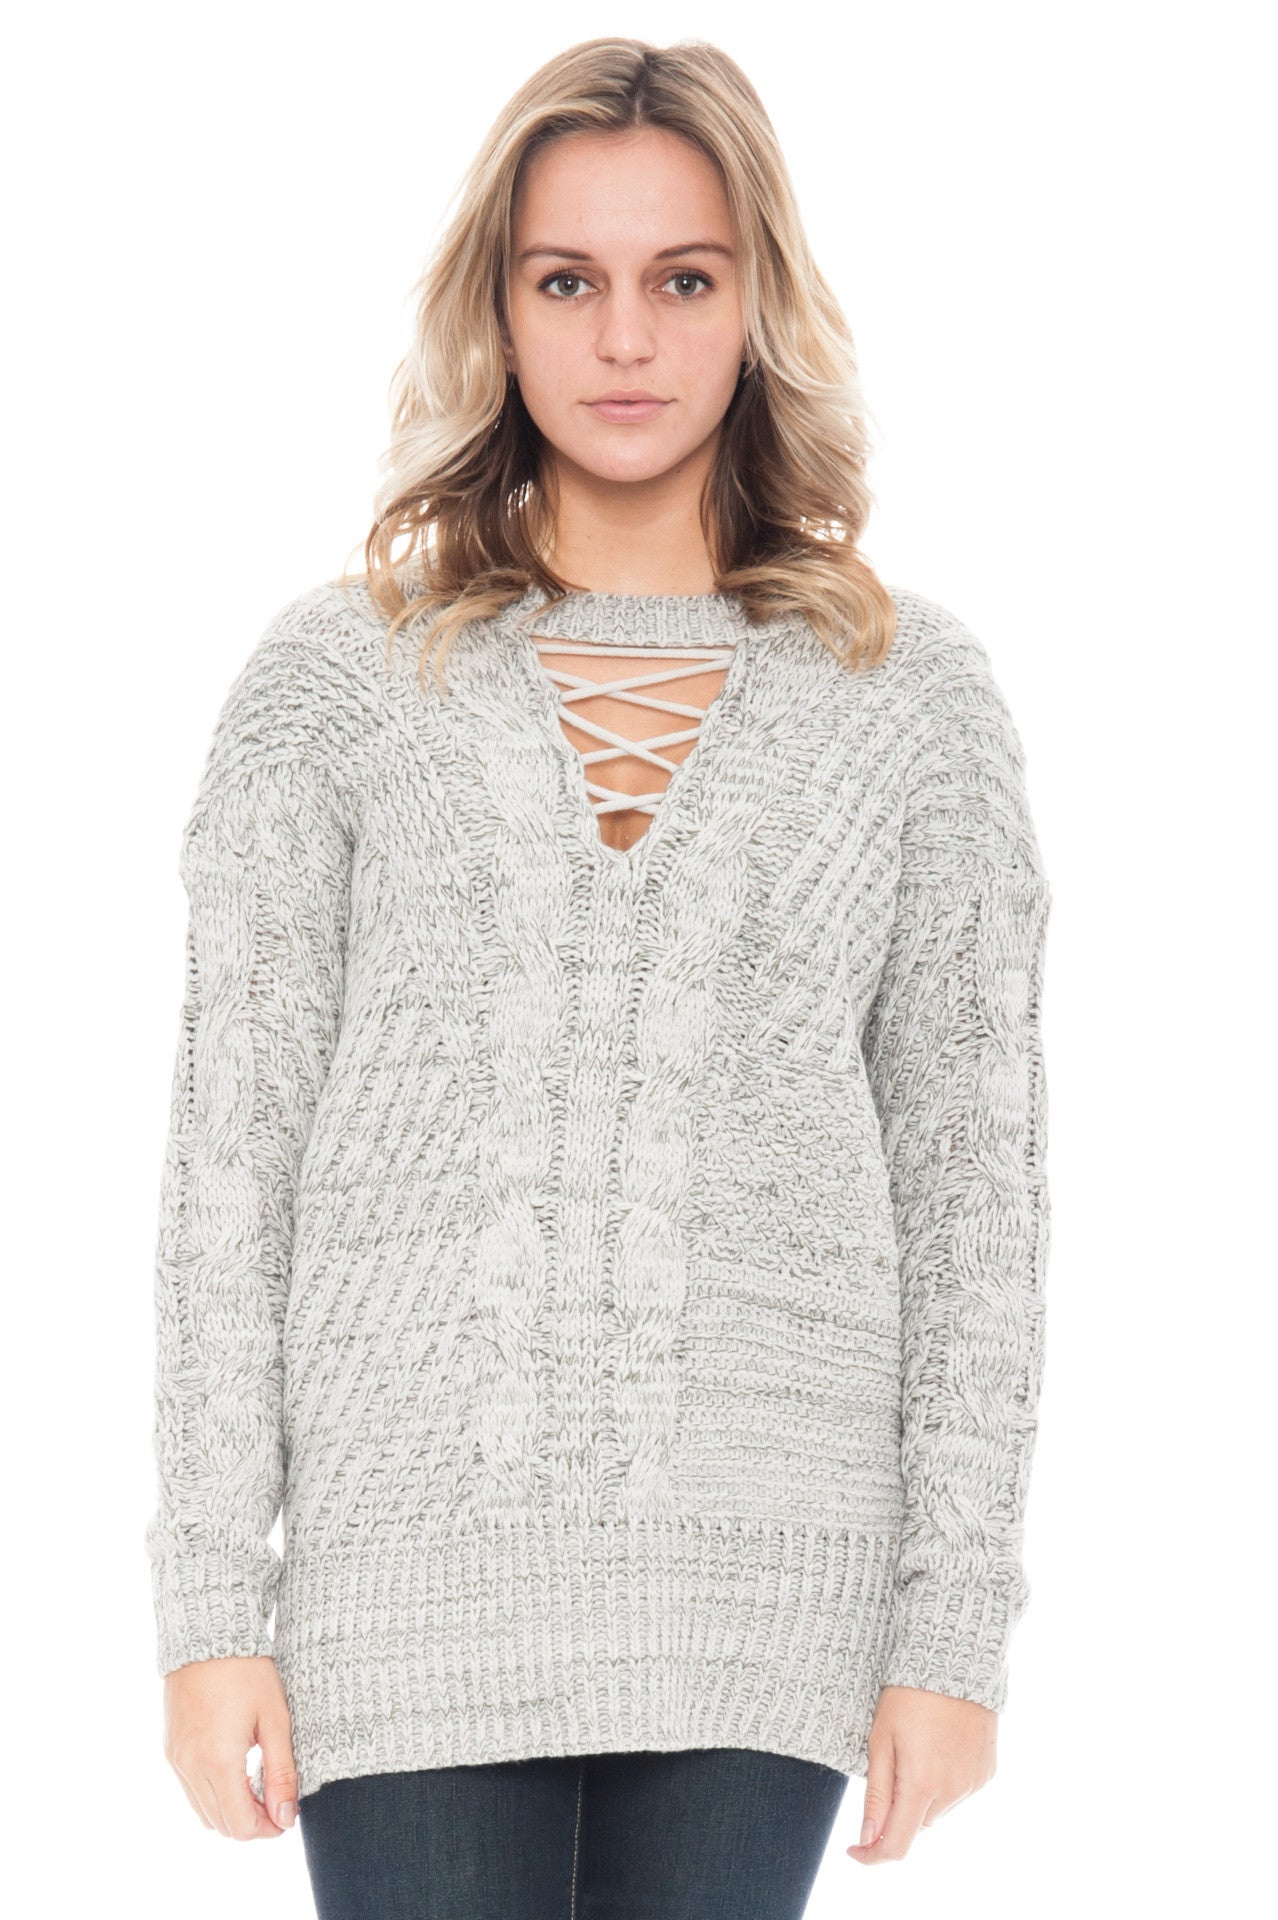 Sweater - Knit Lace Up By Paper Crane